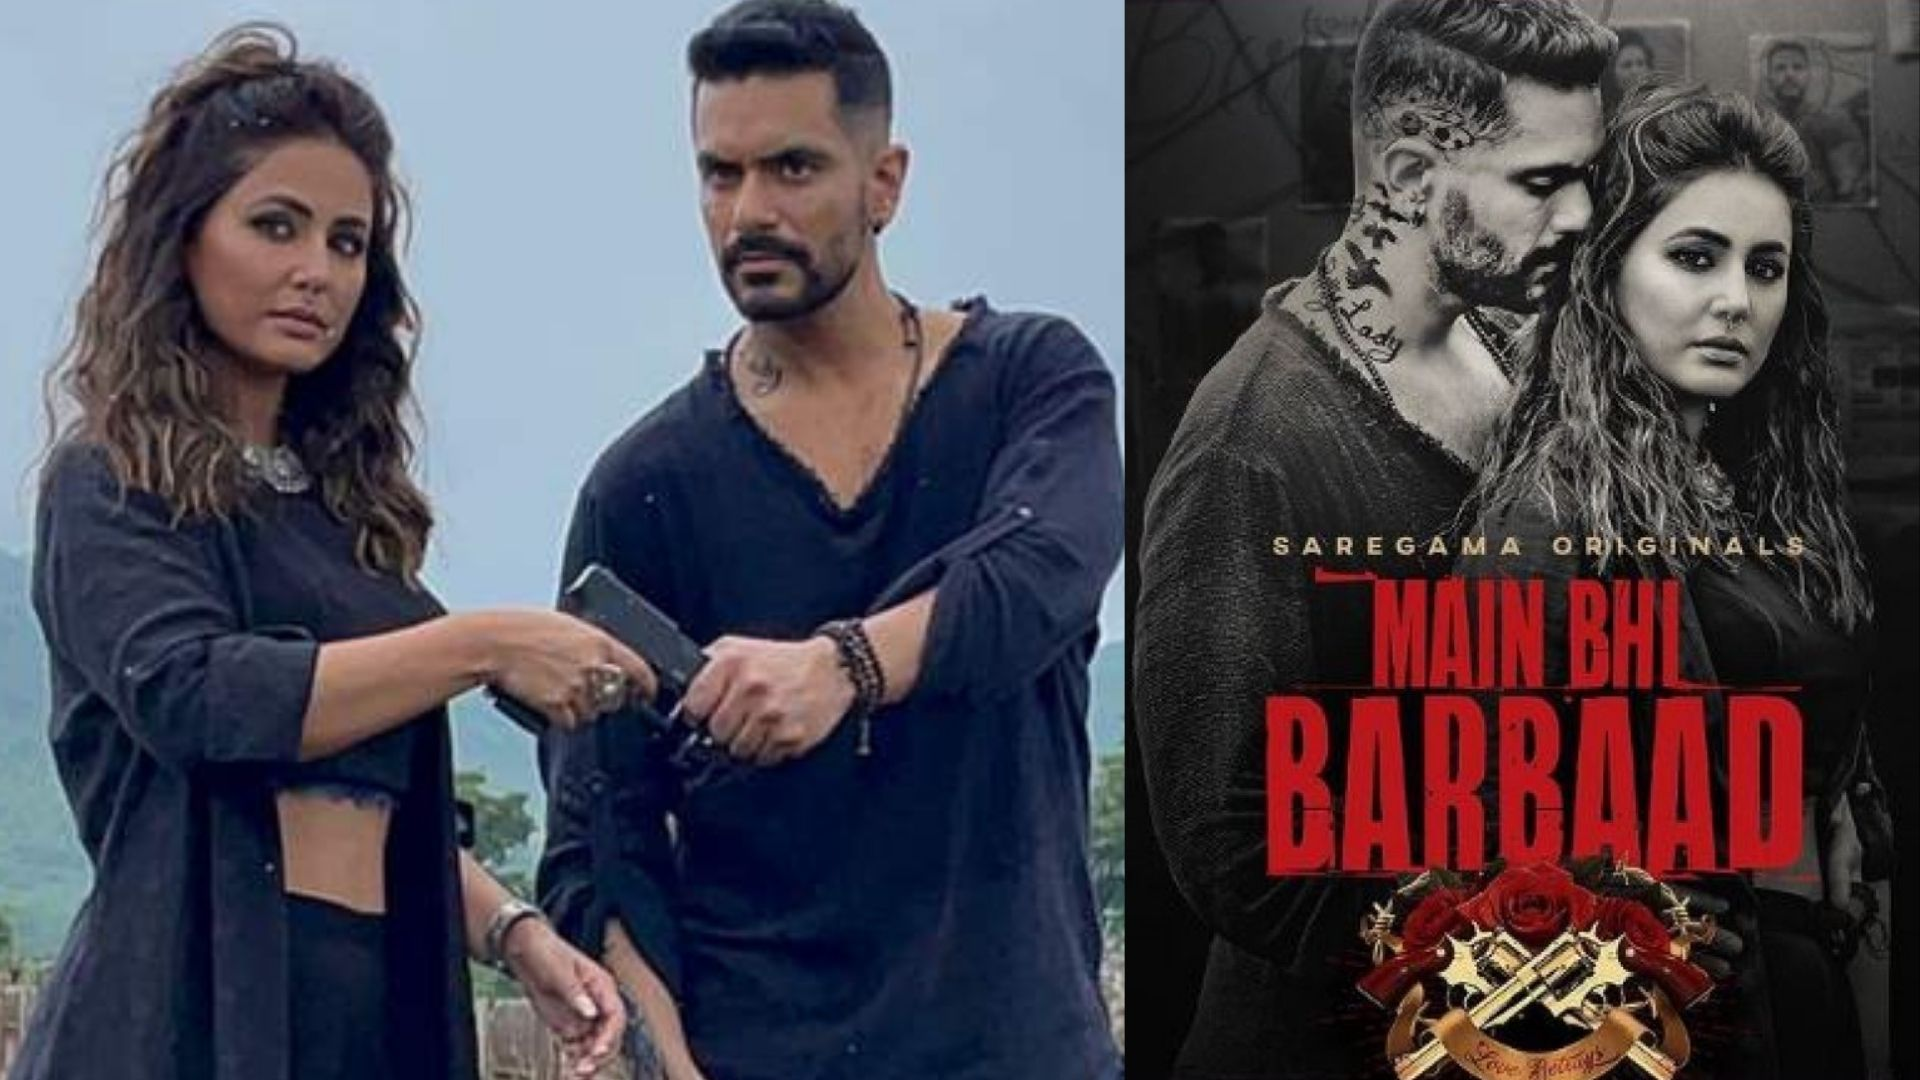 Main Bhi Barbad Song Out: Hina Khan And Angad Bedi's Track Will Take You On A Roller Coaster Of Love And Betrayal